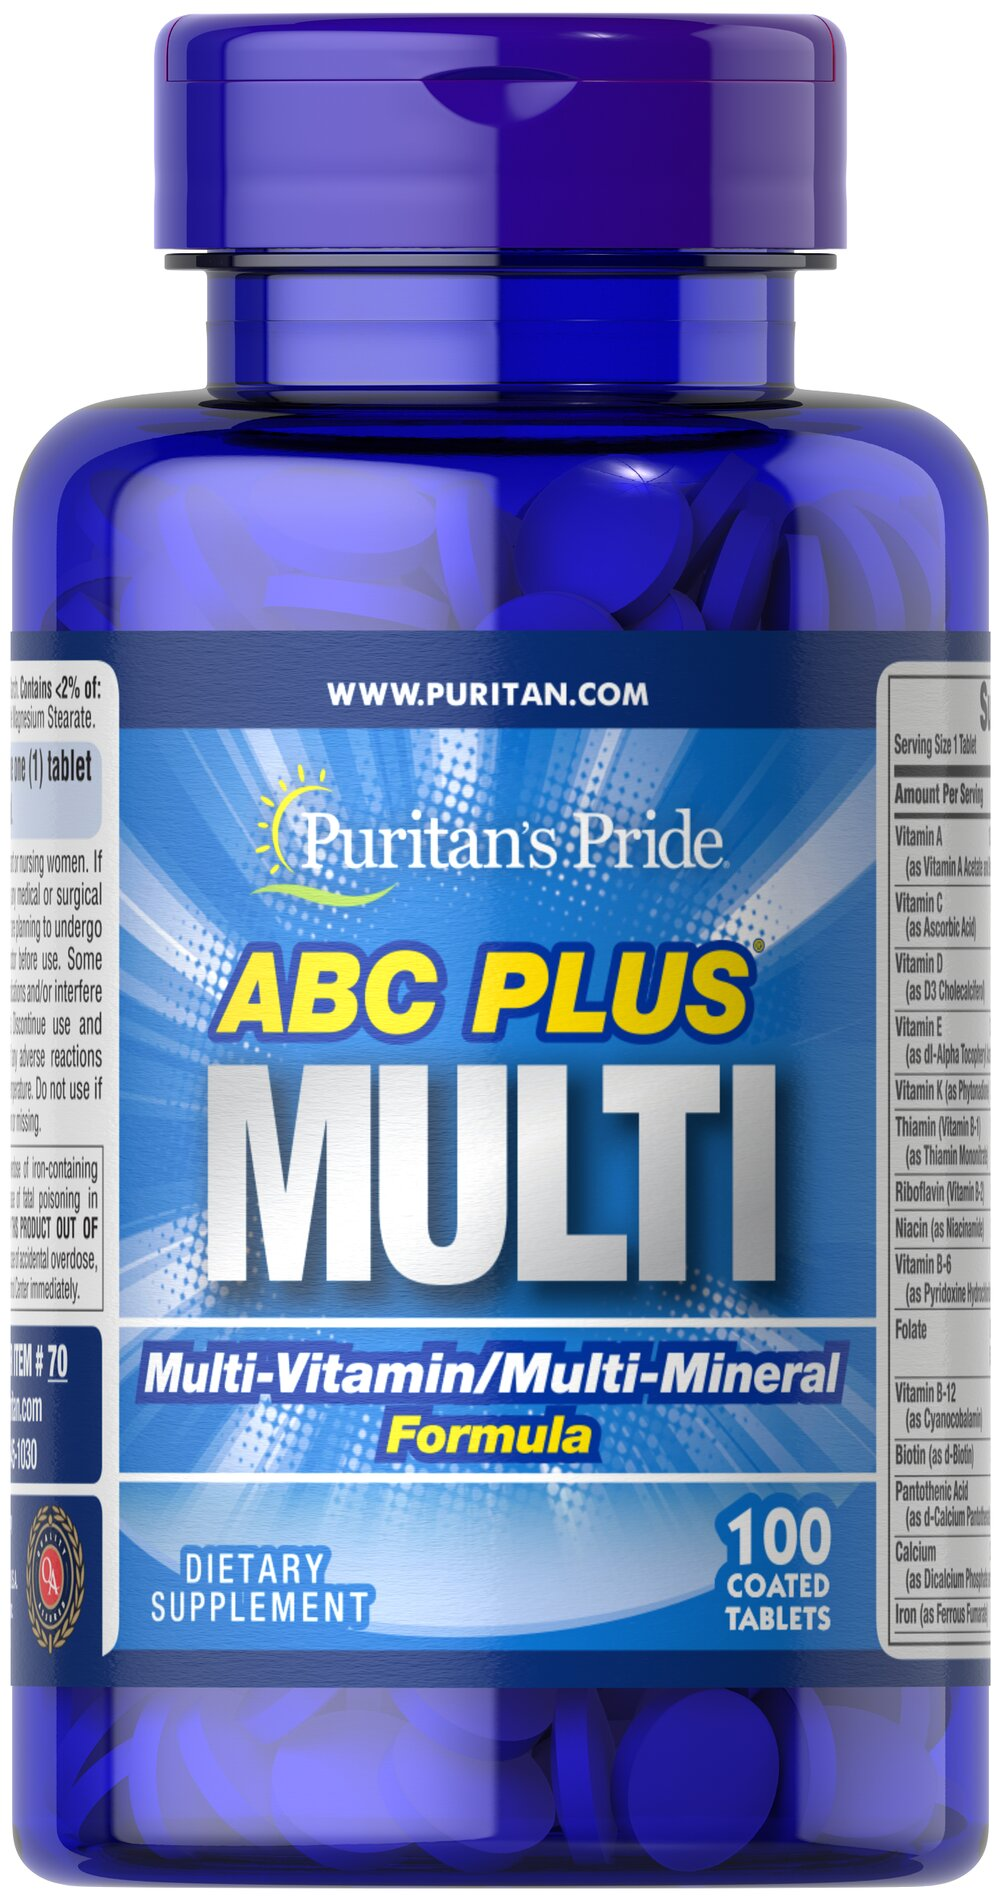 ABC Plus Multivitamin and Multi-Mineral Formula <p>Now getting your daily nutrients is as easy as ABC Plus! This dynamic formula offers a full spectrum of vitamins and minerals for your healthy lifestyle.</p> 100 Caplets  $10.99